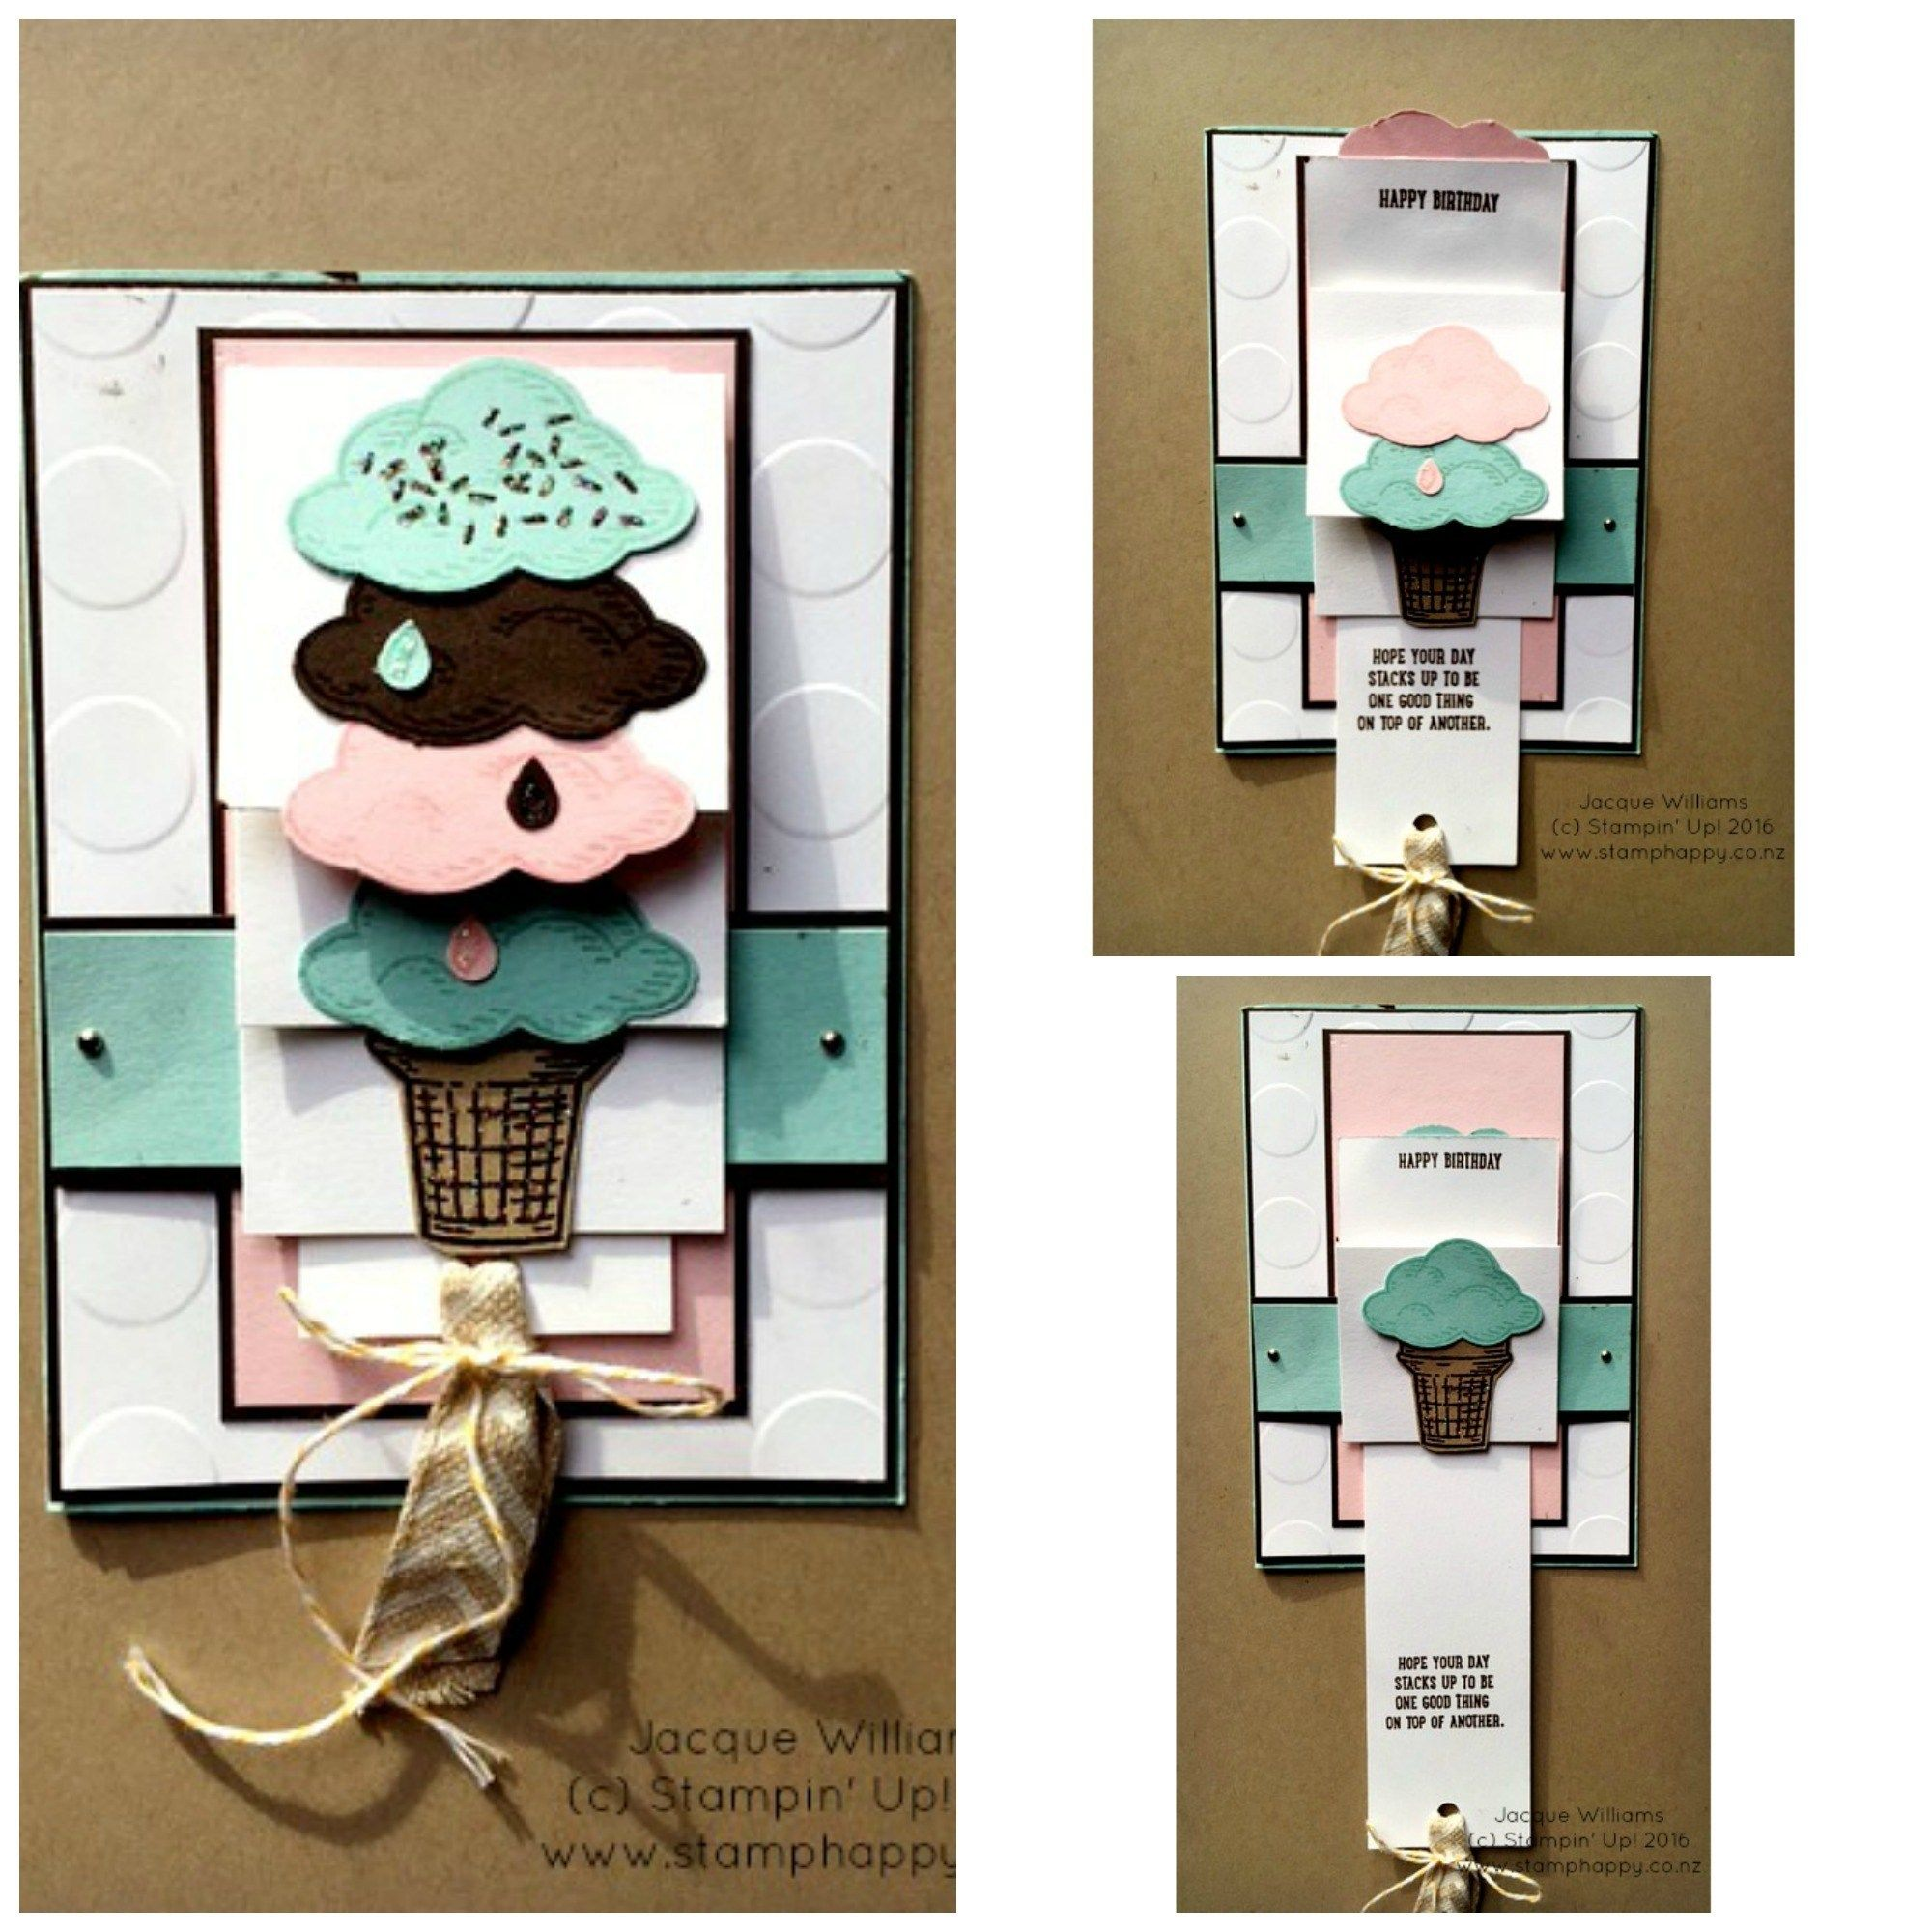 Sprinkles Of Life Waterfall Card Stamp Happy Jacque Williams Stampin Up Demonstrator Waterfall Cards Cards Handmade Card Craft